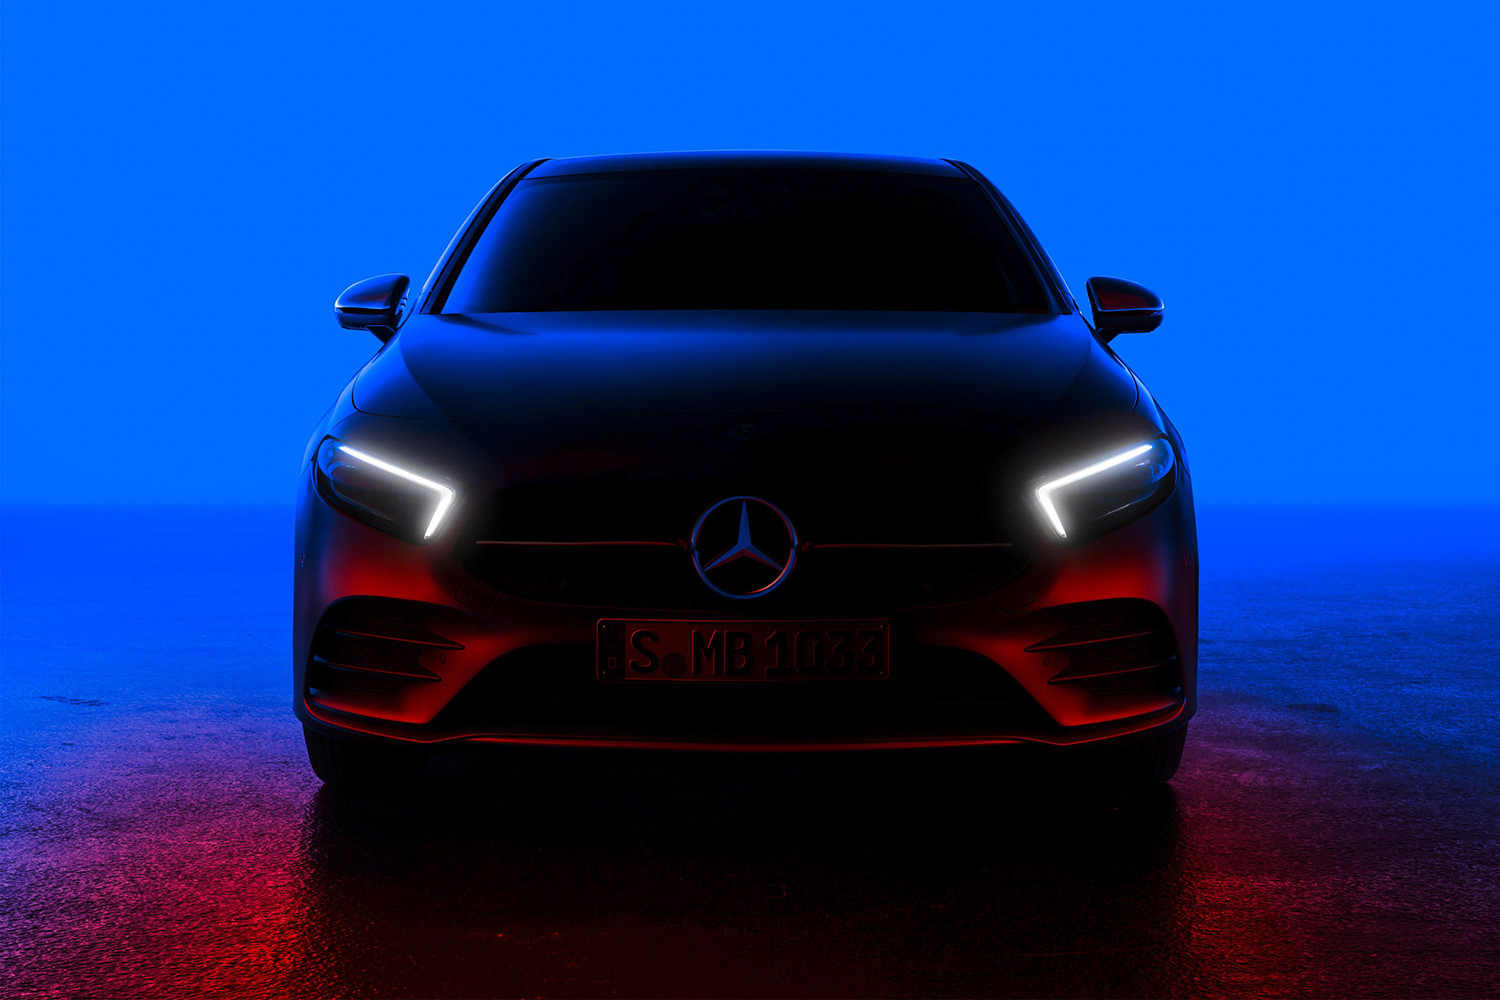 mercedes car in the dark with headlights on